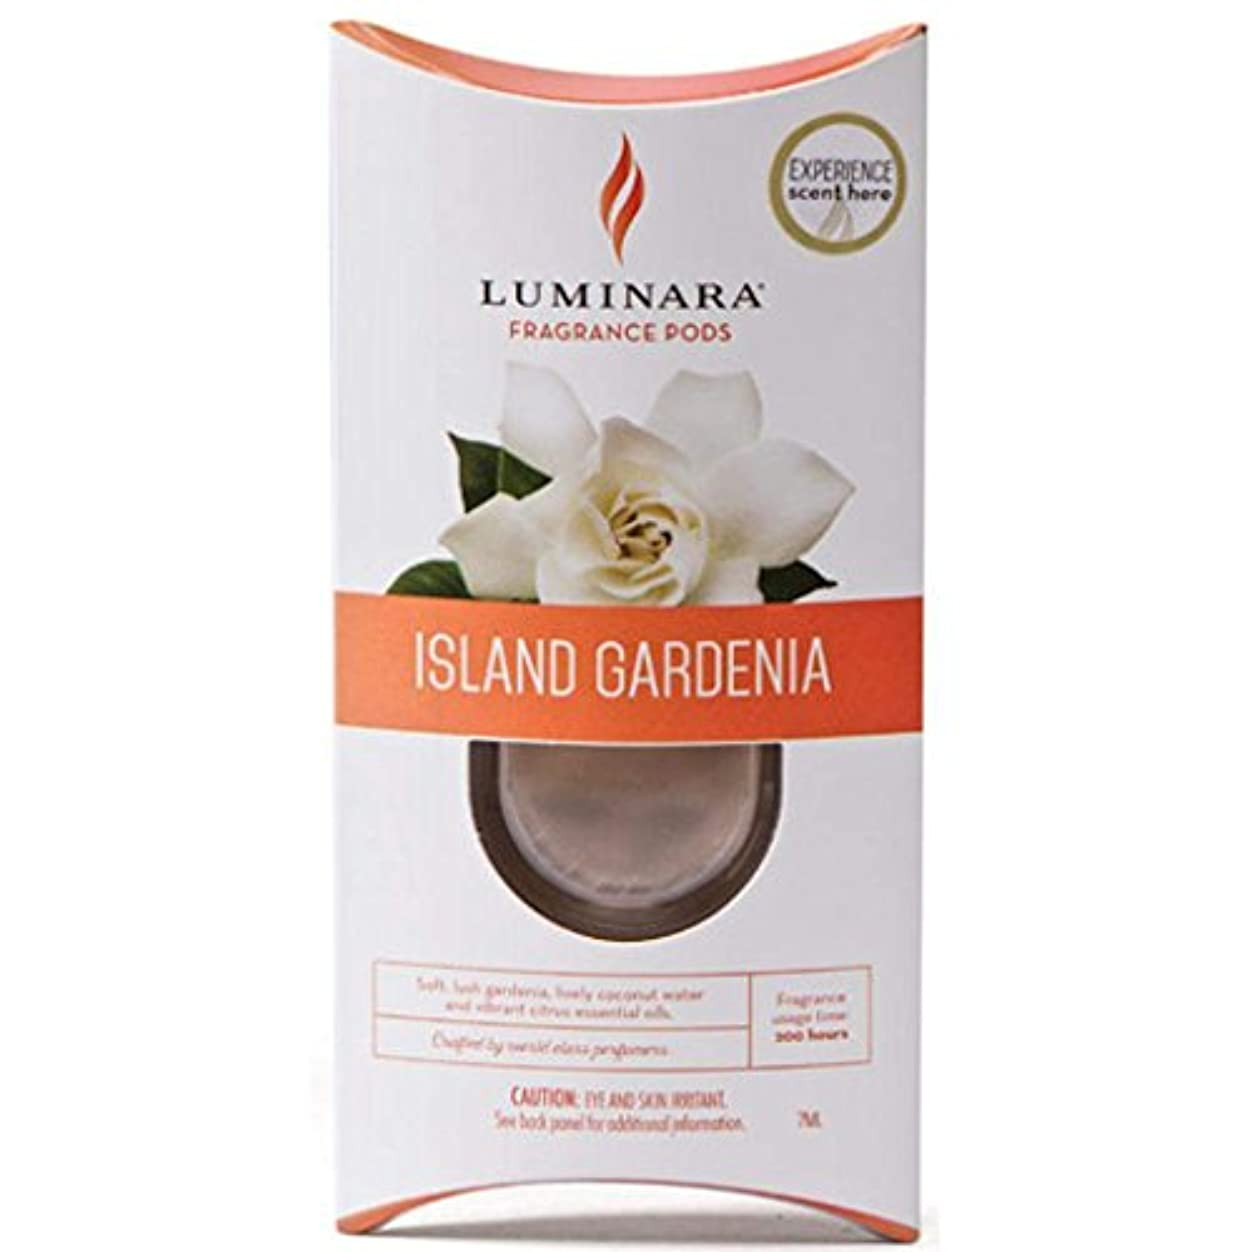 1つLuminara Fragranceカートリッジ島Gardenia | for Luminara Fragrance Diffusing Flameless Candleピラー